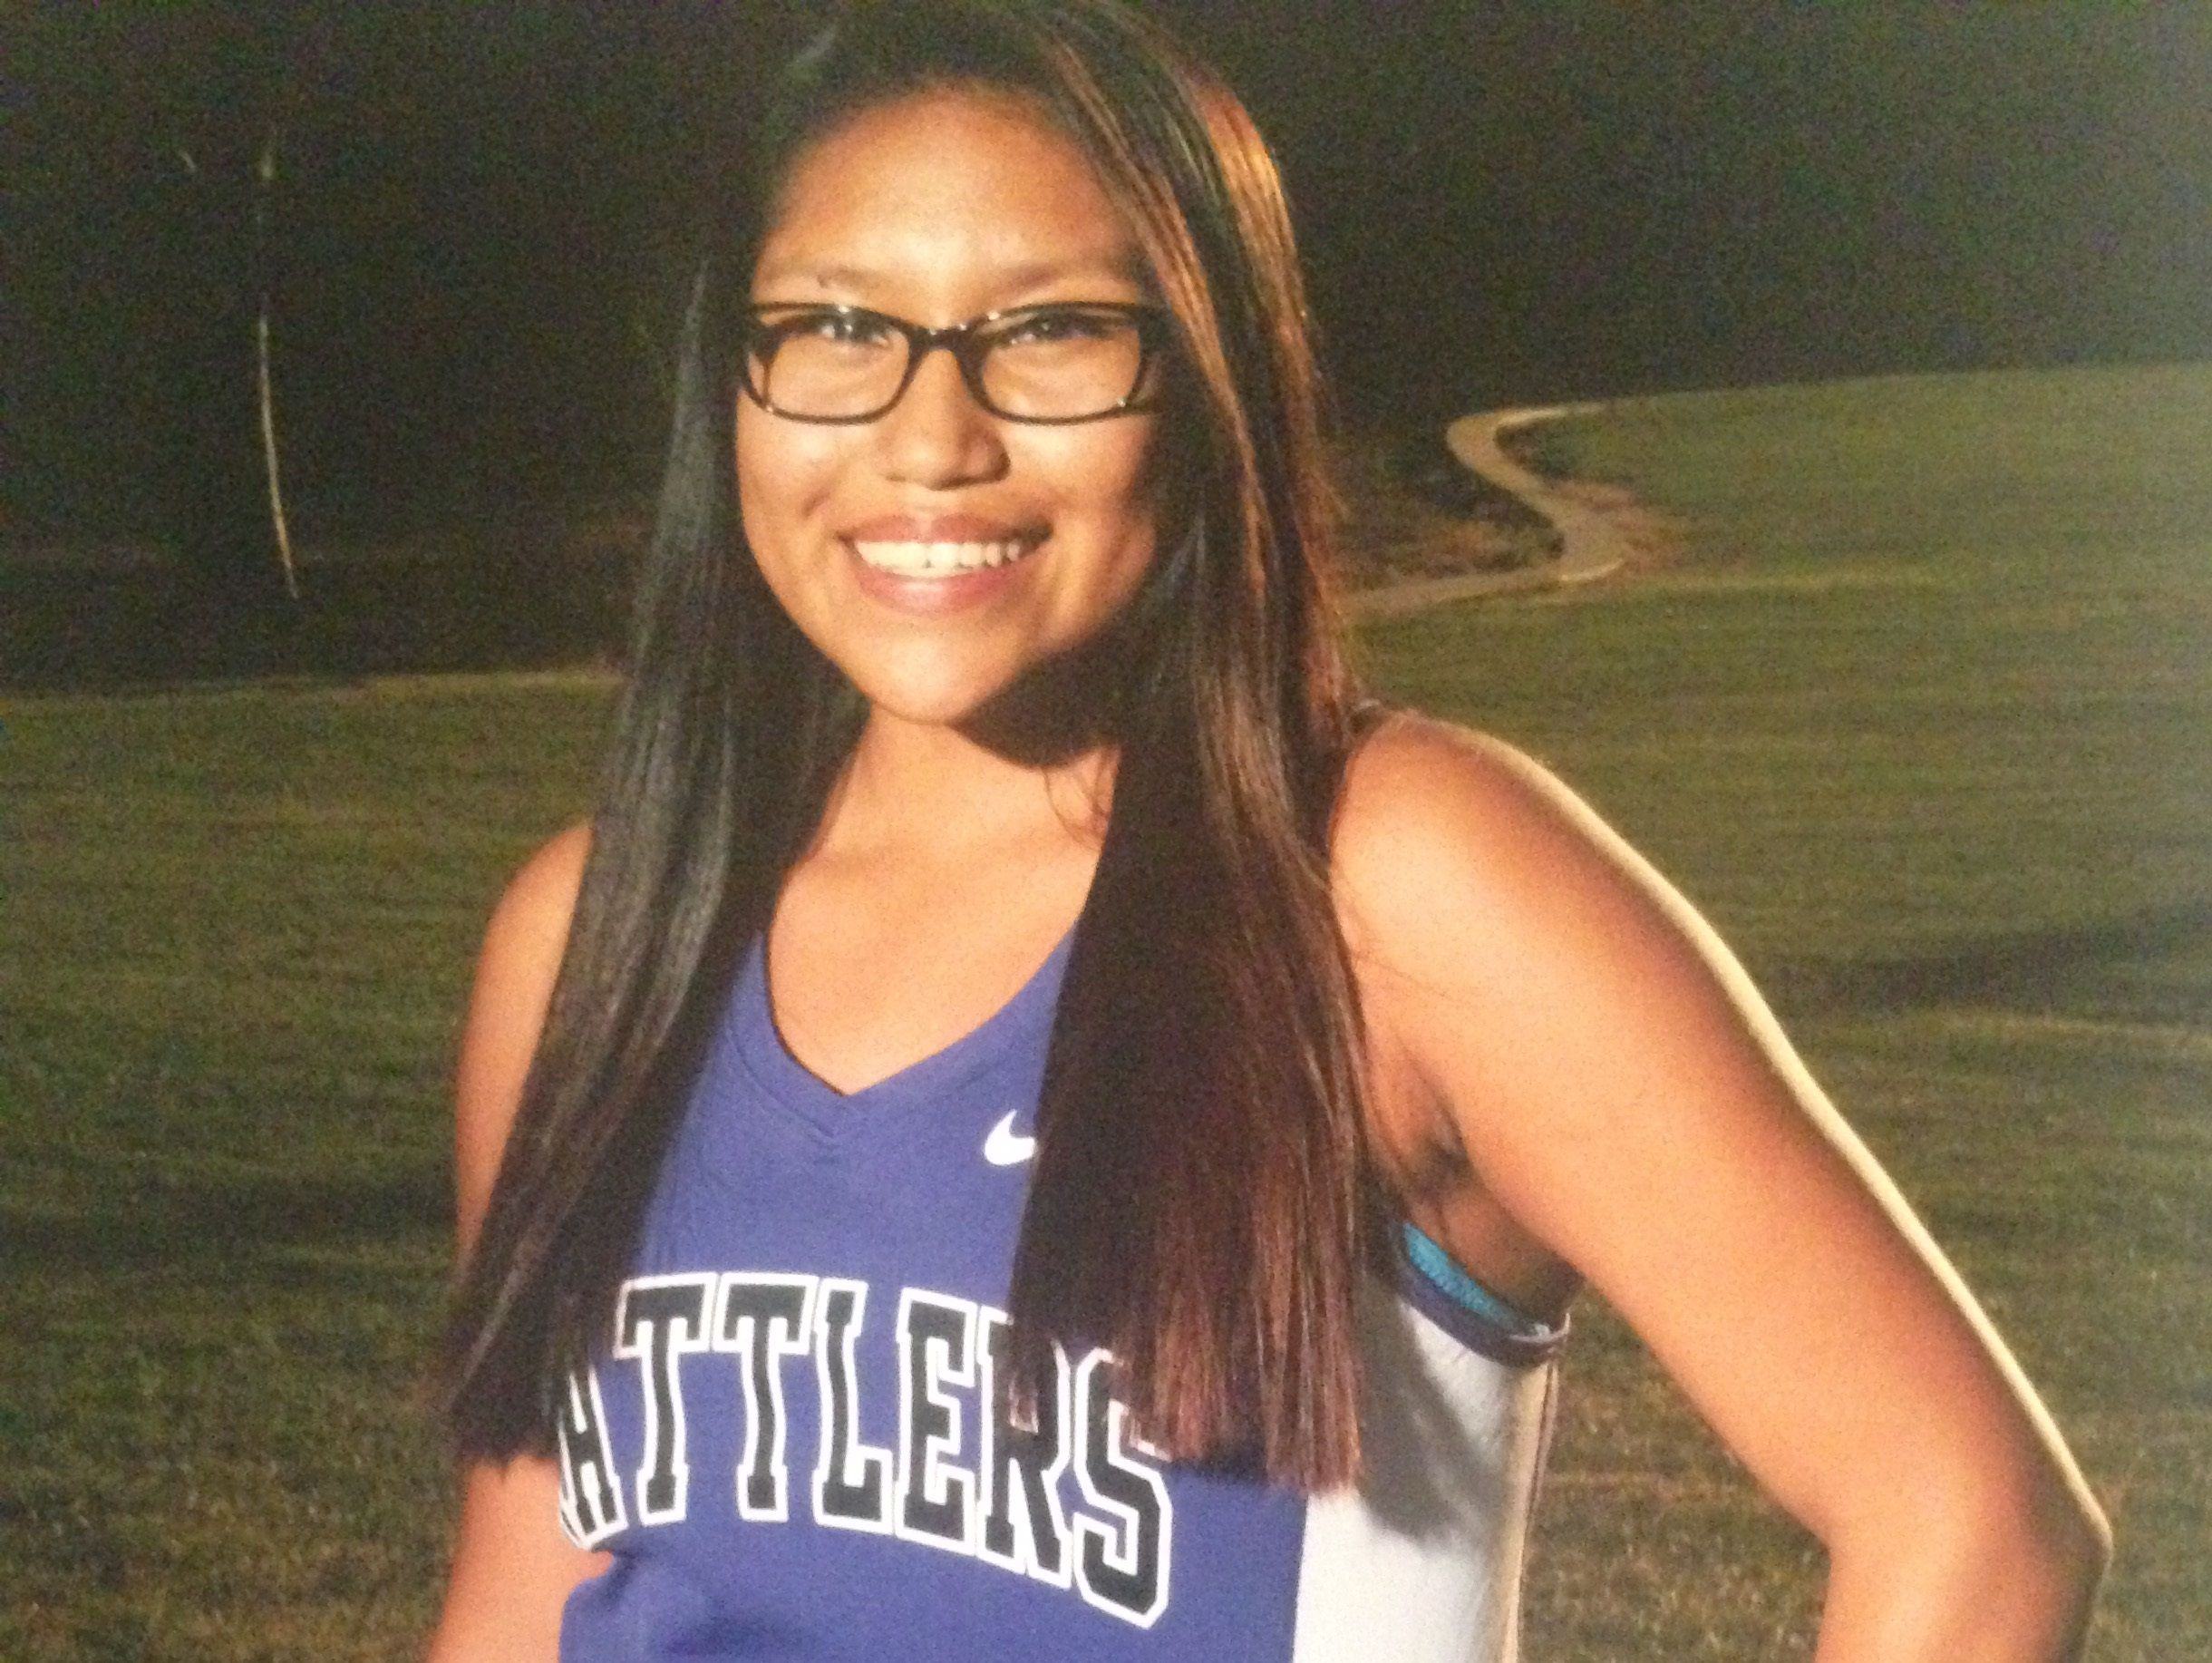 Bahazhonii Washington, from North Canyon High School, is azcentral sports' Female Athlete of the Week for Oct. 22-29.